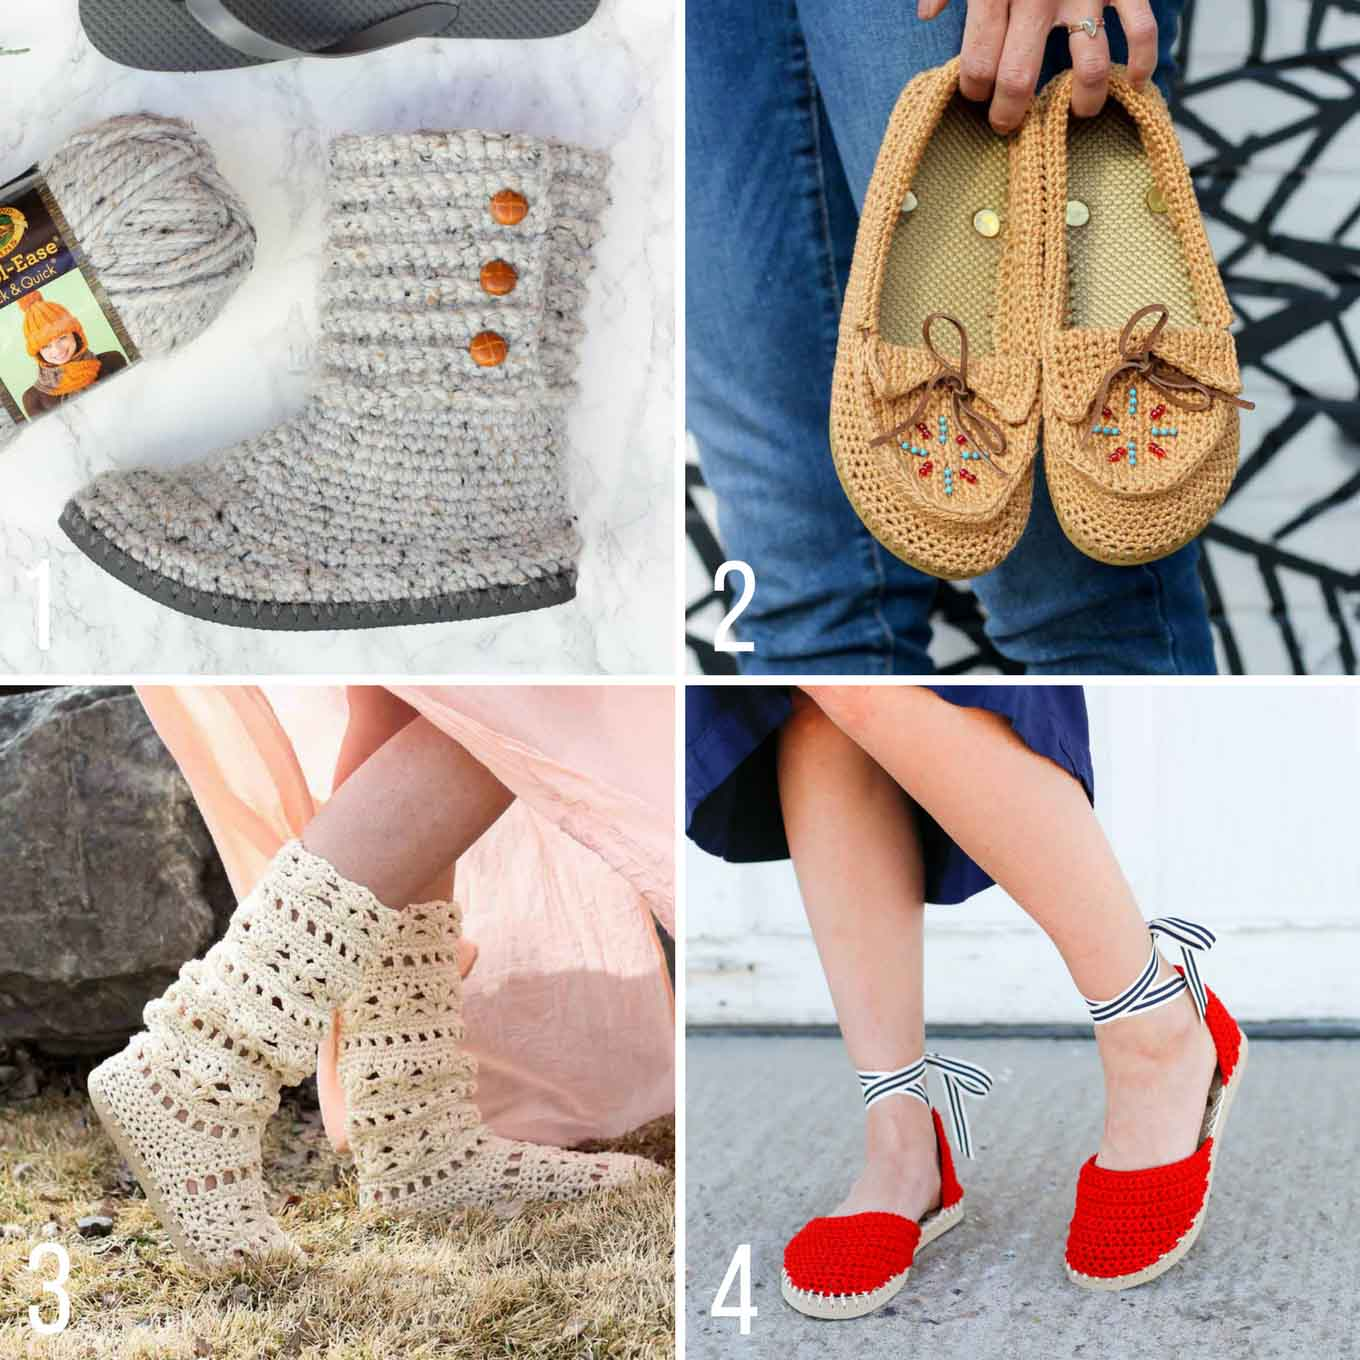 Flip flop crochet patterns -- free from Make and Do Crew